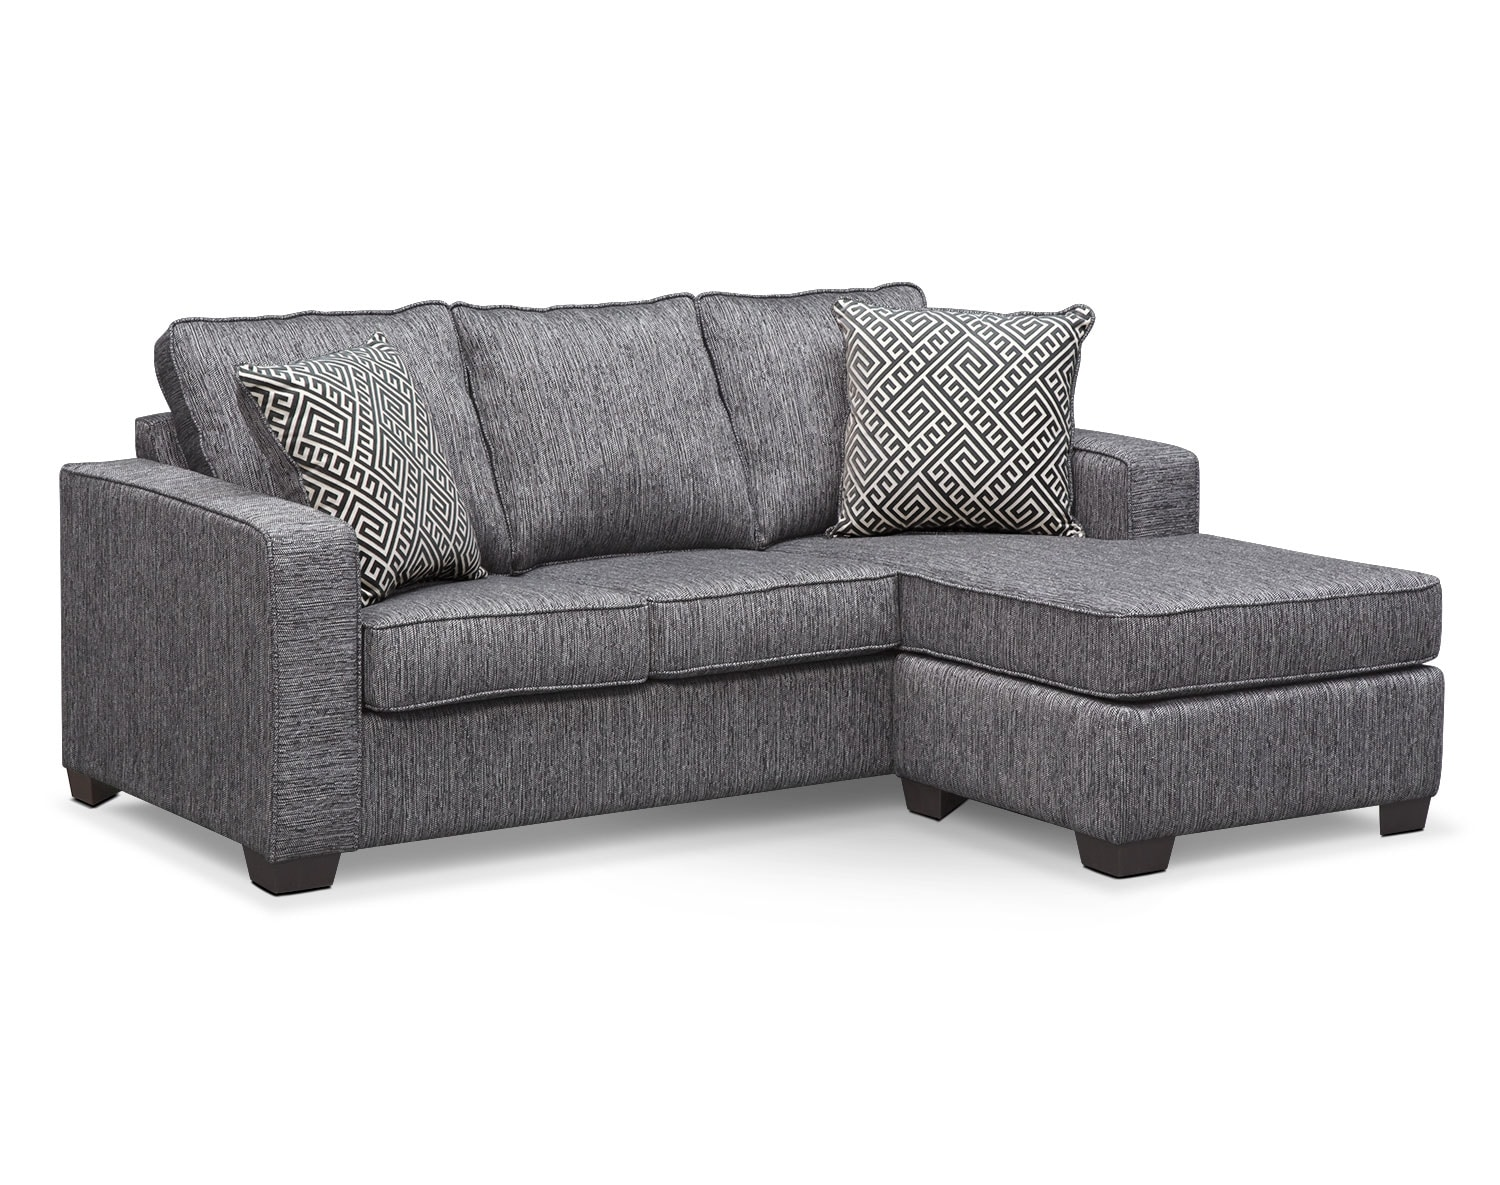 [The Sterling Charcoal Sleeper Sofa Collection]